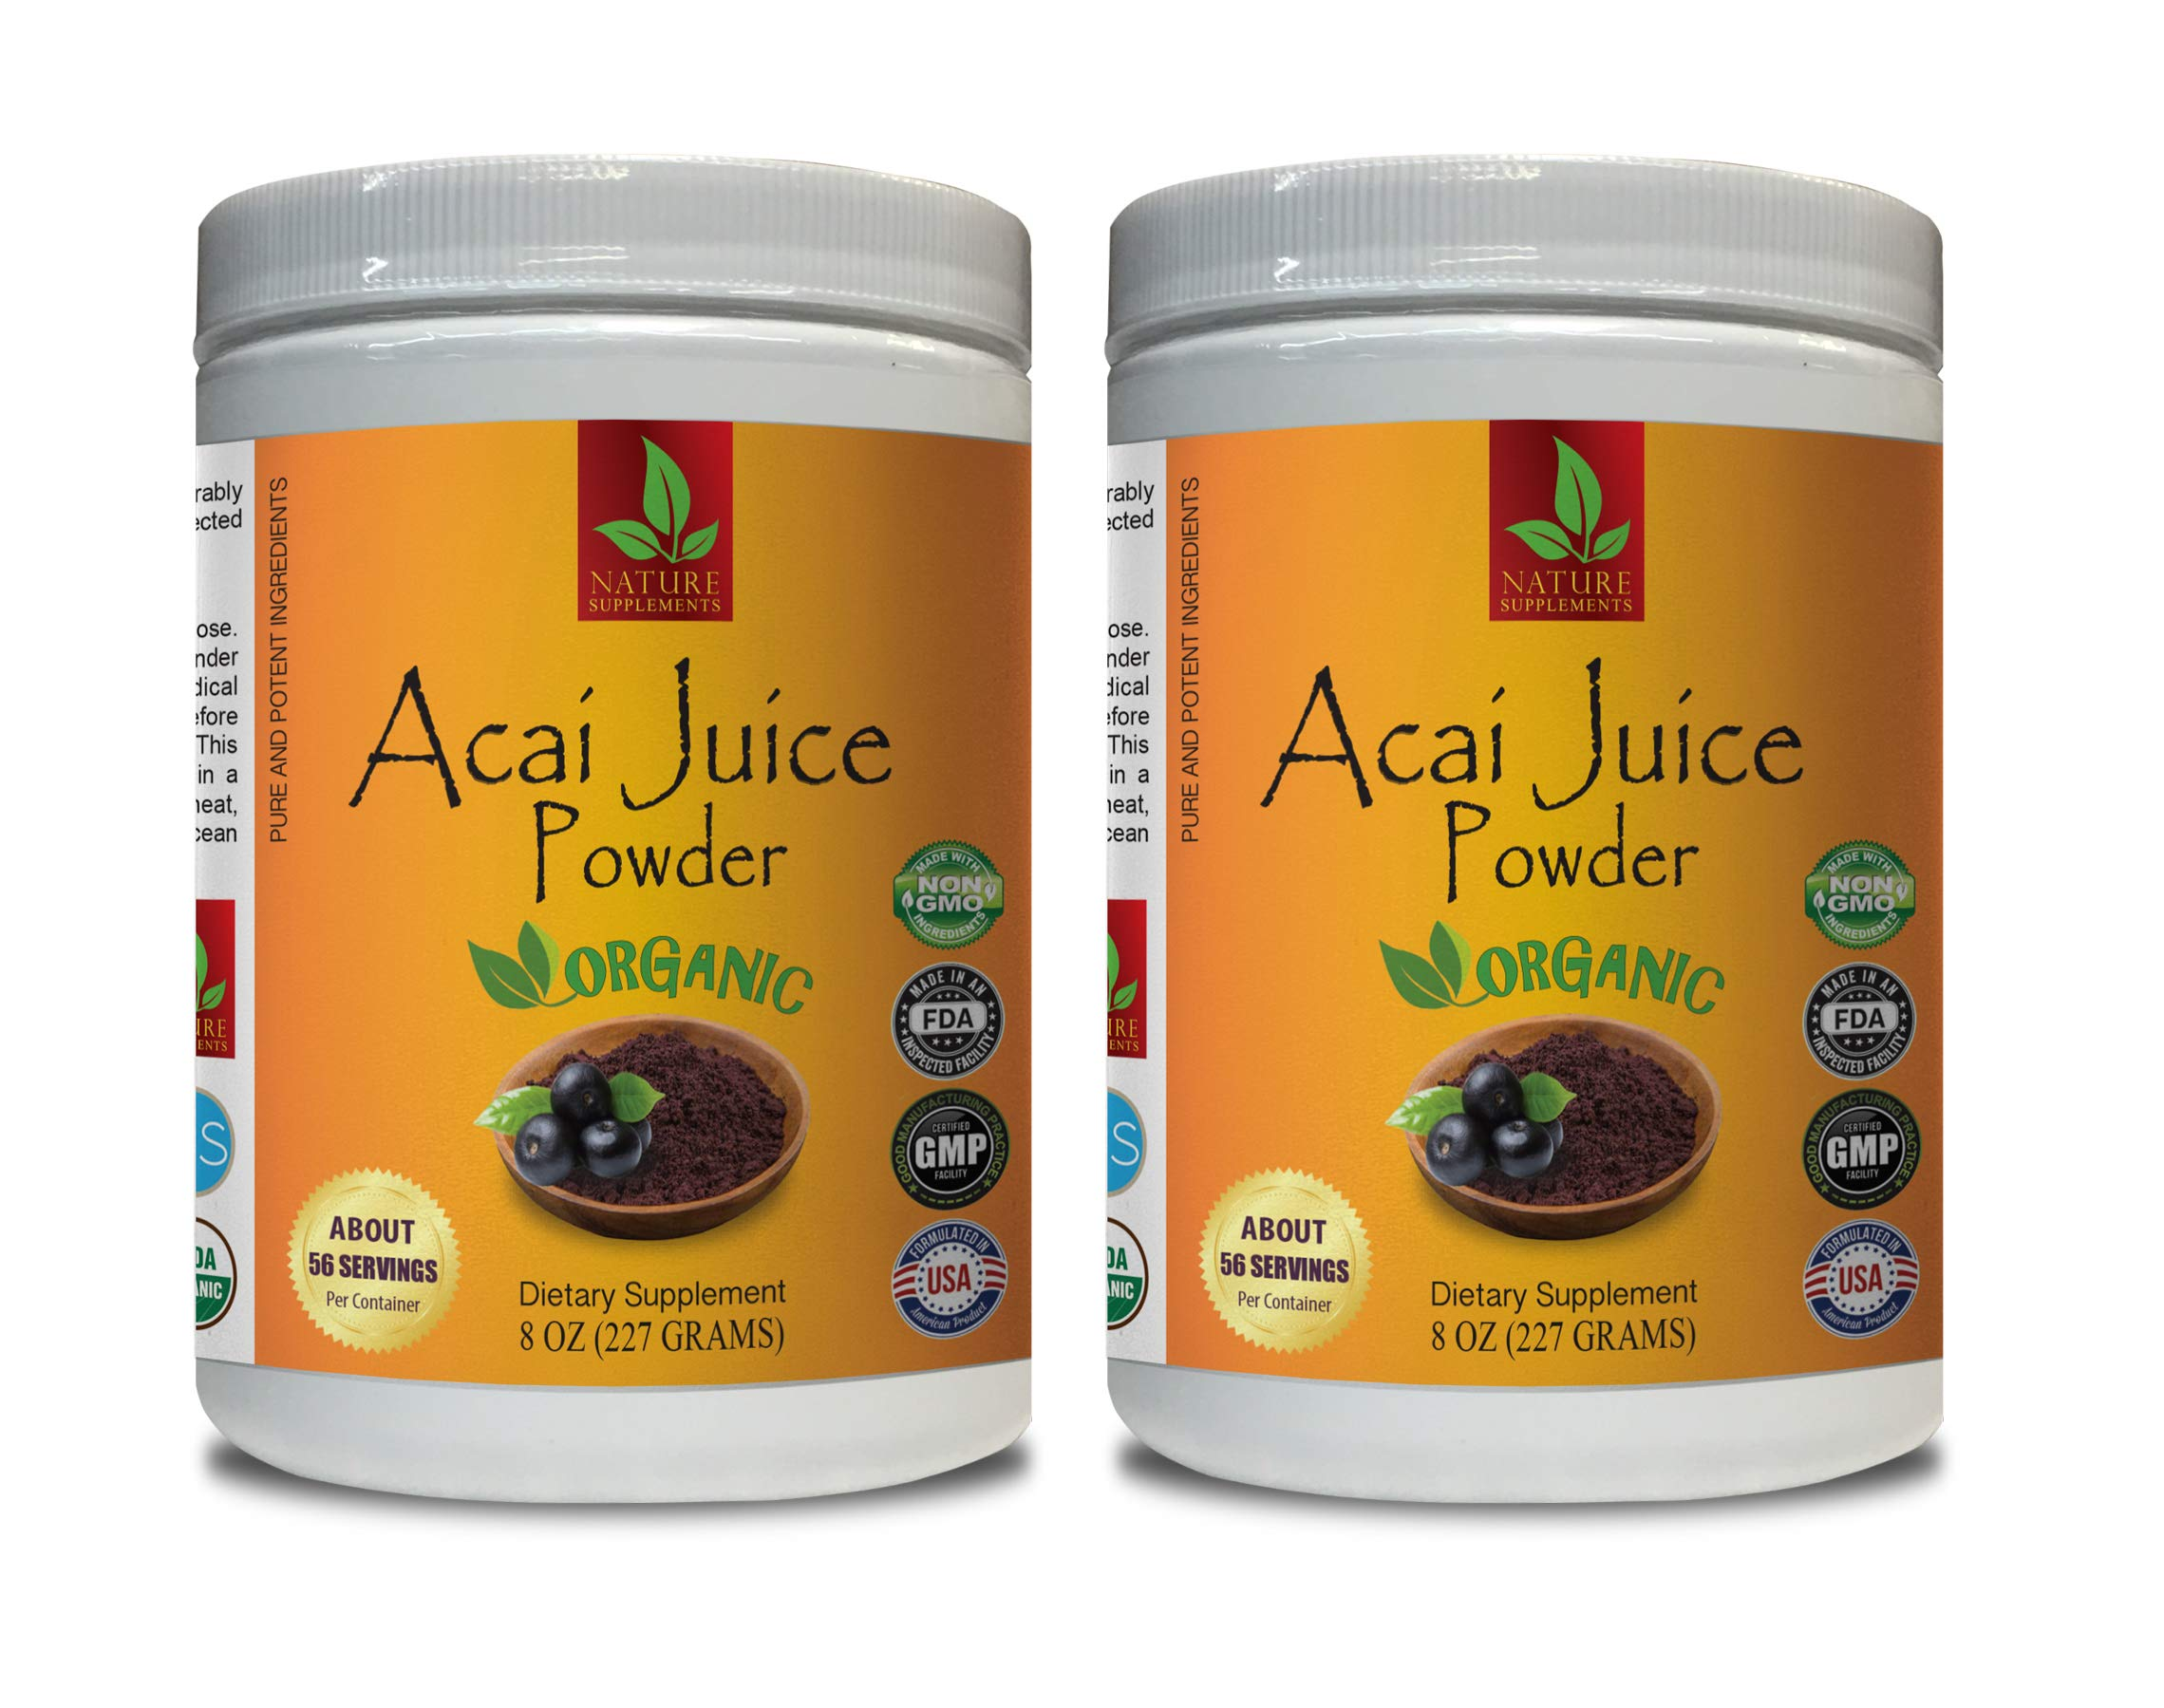 antioxidant Anti Aging - ACAI Organic Juice Powder - Pure and Potent Ingredients - acai Weight Loss Product - 2 Cans 16 OZ (130 Servings)